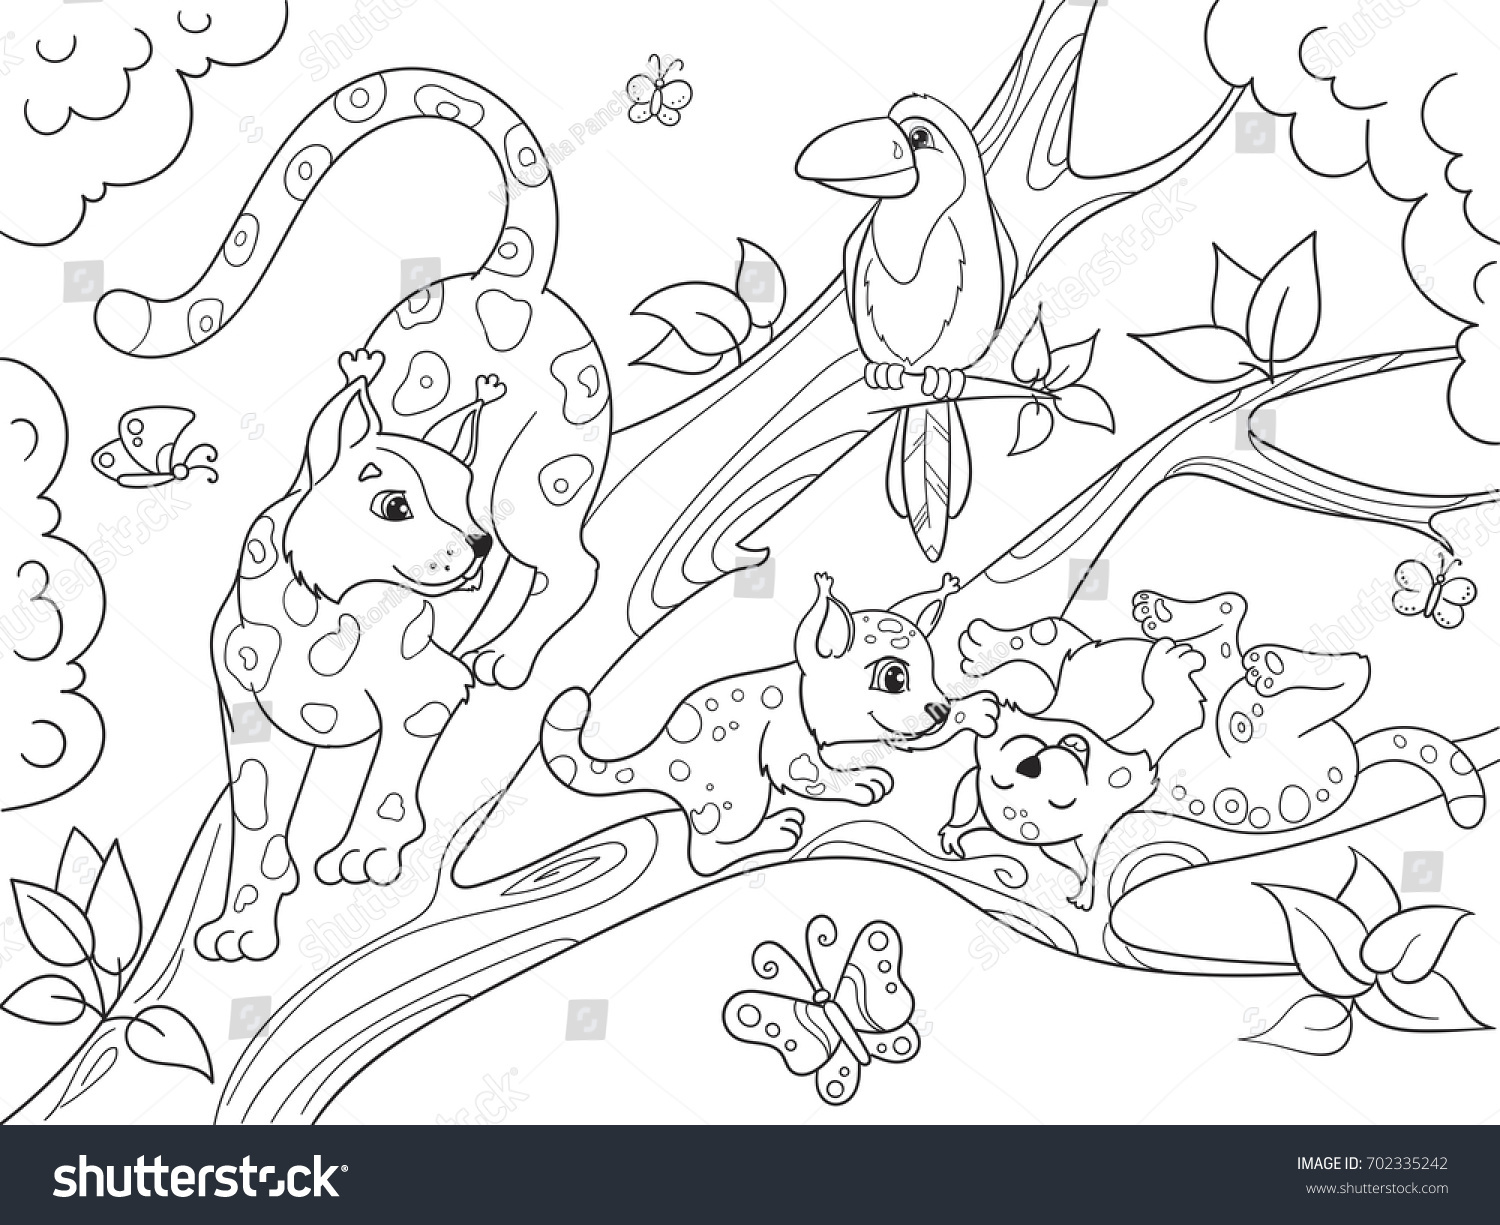 Jungle Forest With Animals Cartoon Raster Illustration Zentangle Style Black And White